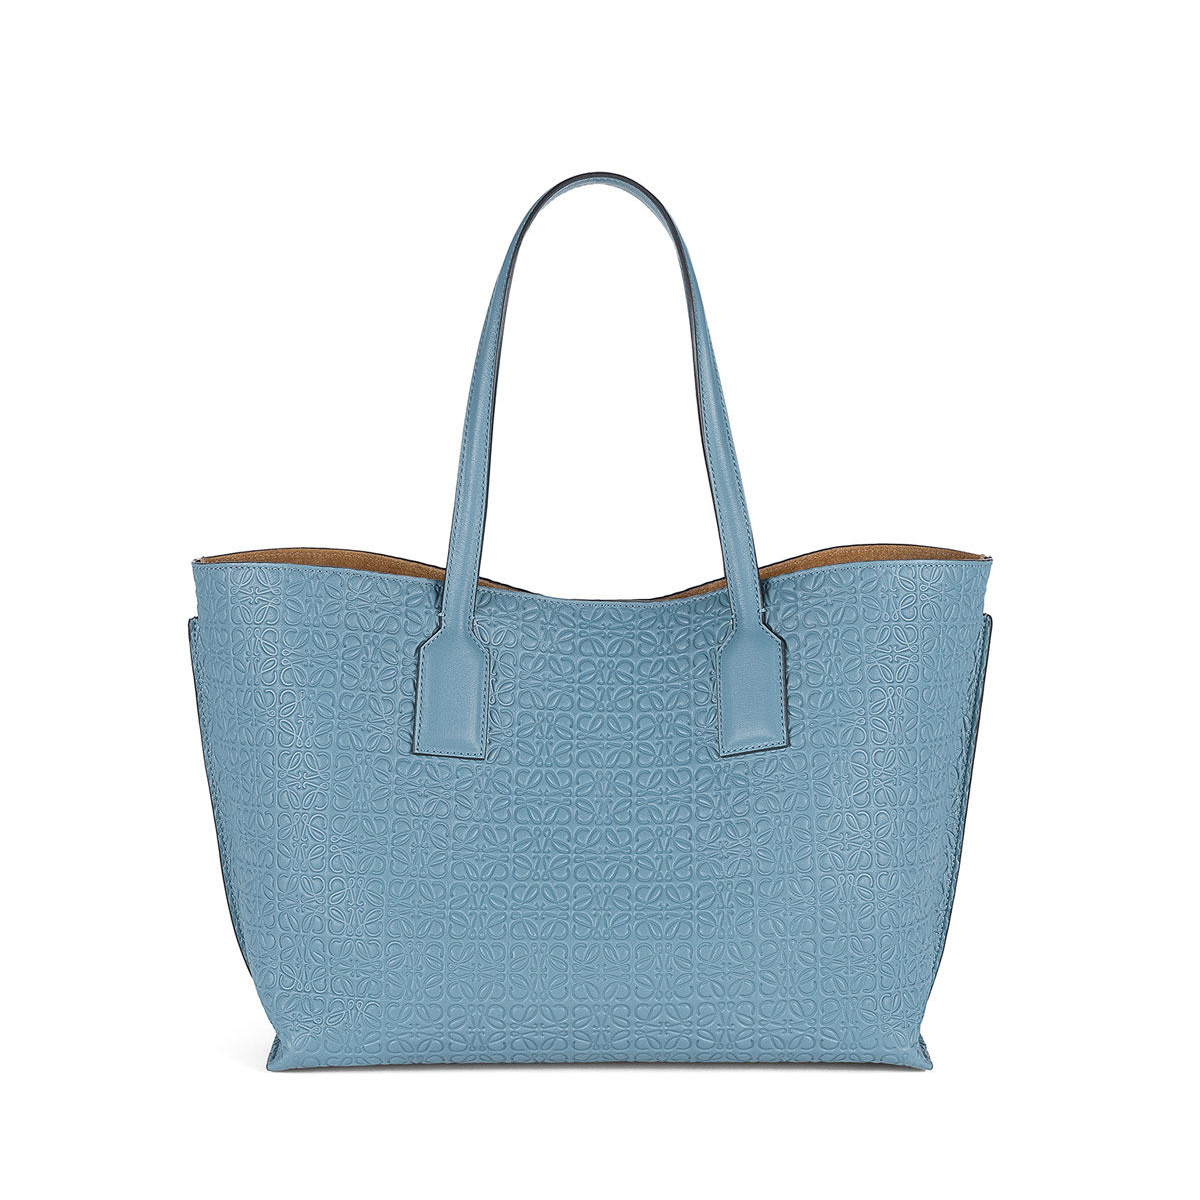 T SHOPPER BAG 【送料無料】